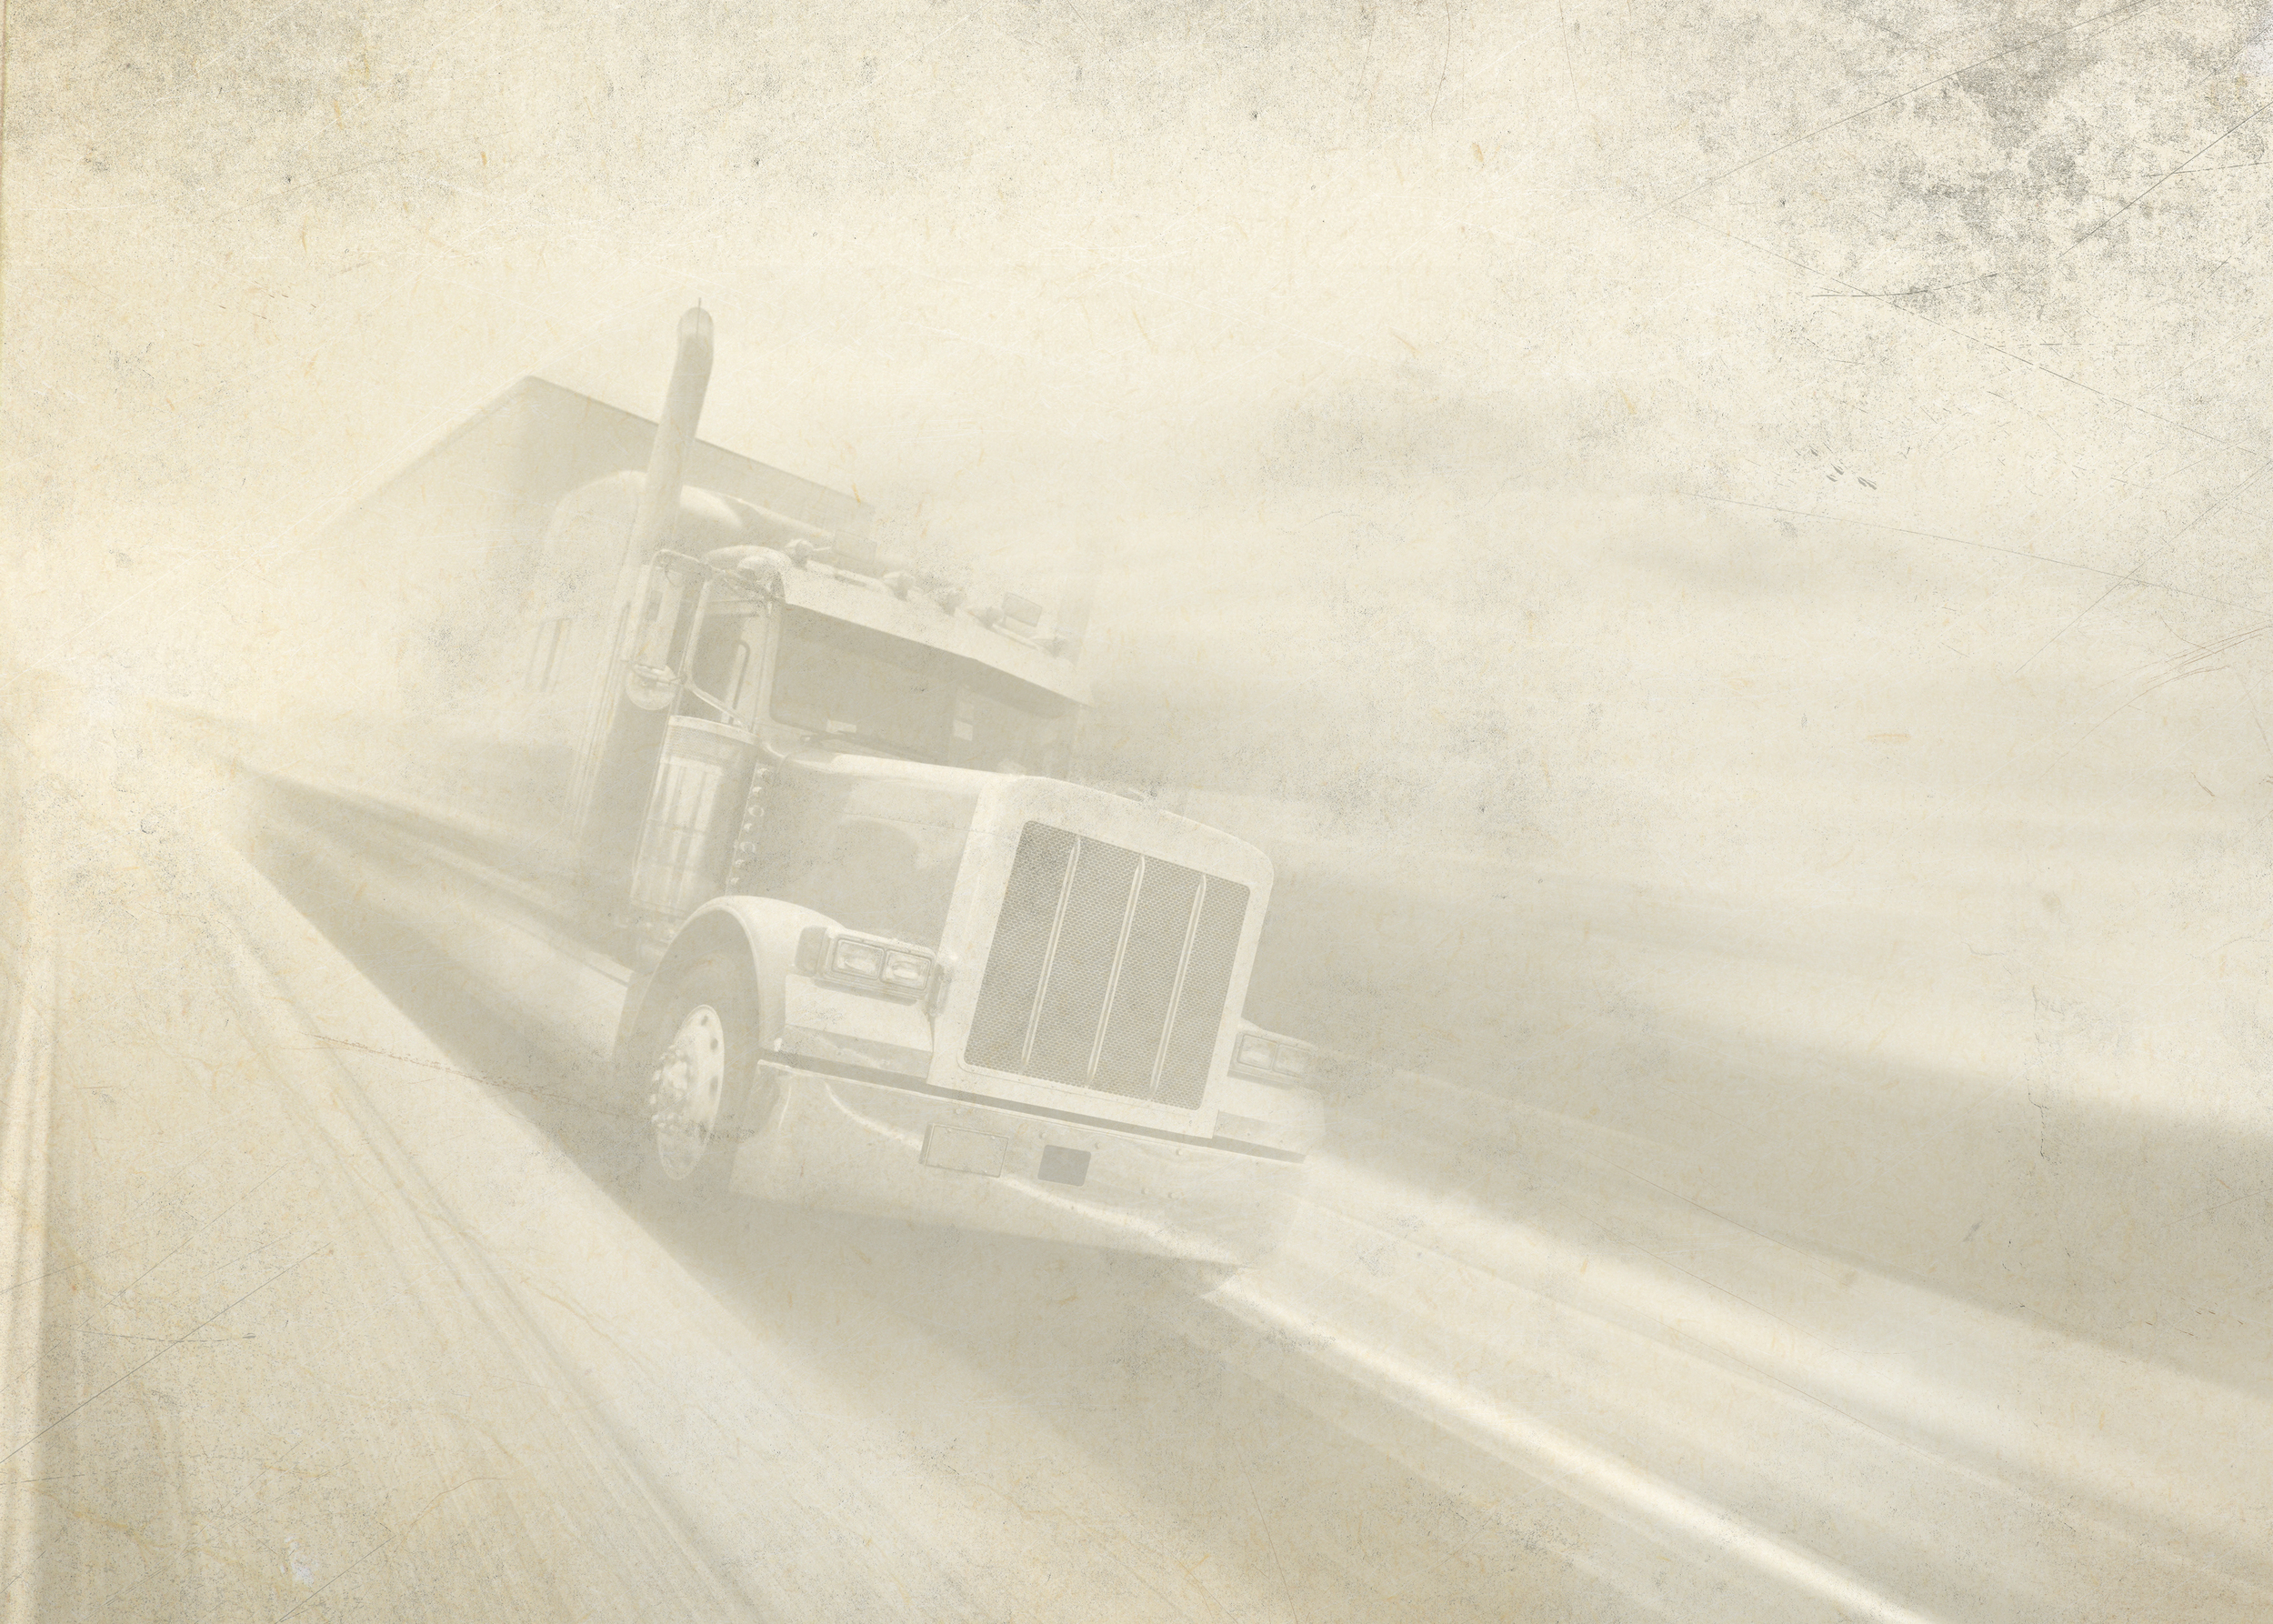 SPEED LIMITS. WEIGHT LIMITS. FUEL COSTS.  MORE NUMBERS ARE THE LAST THINGS A TRUCKING COMPANY NEEDS TO WORRY ABOUT.   TRANSPORTATION